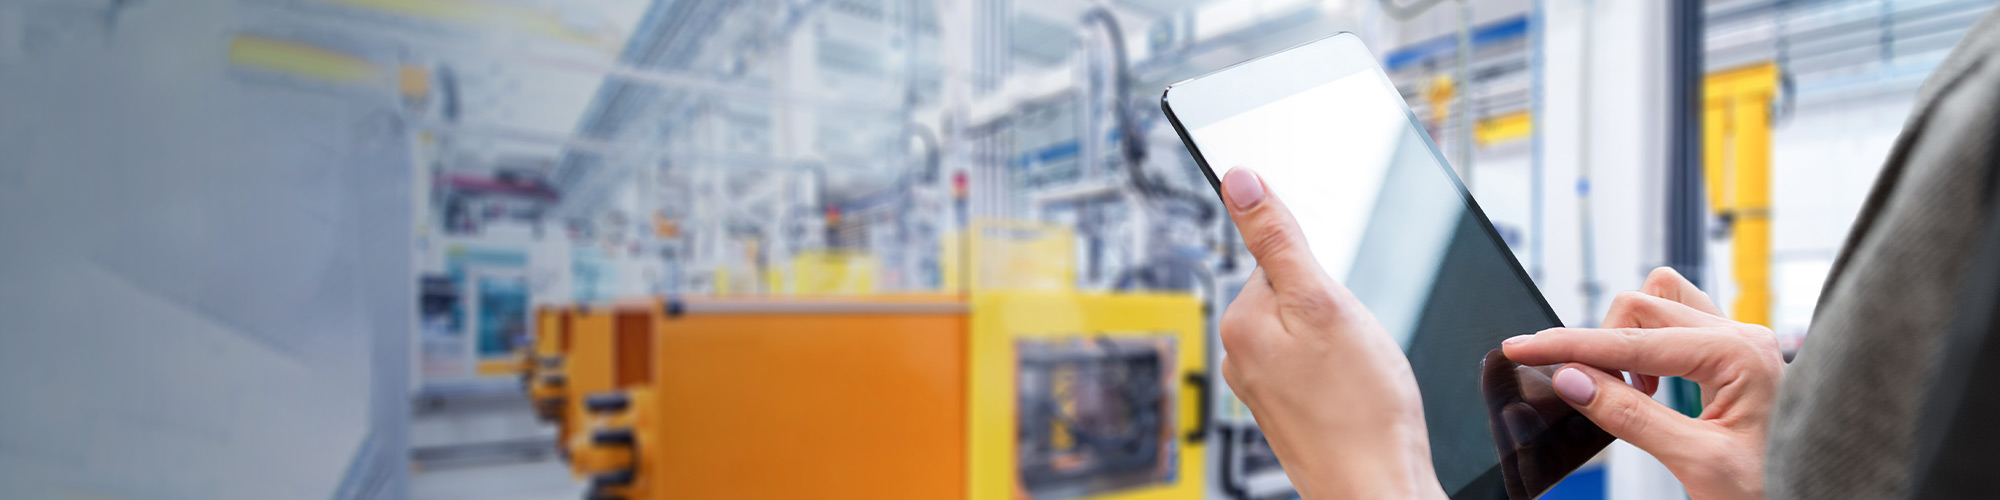 hands holding digital tablet in a manufacturing plant